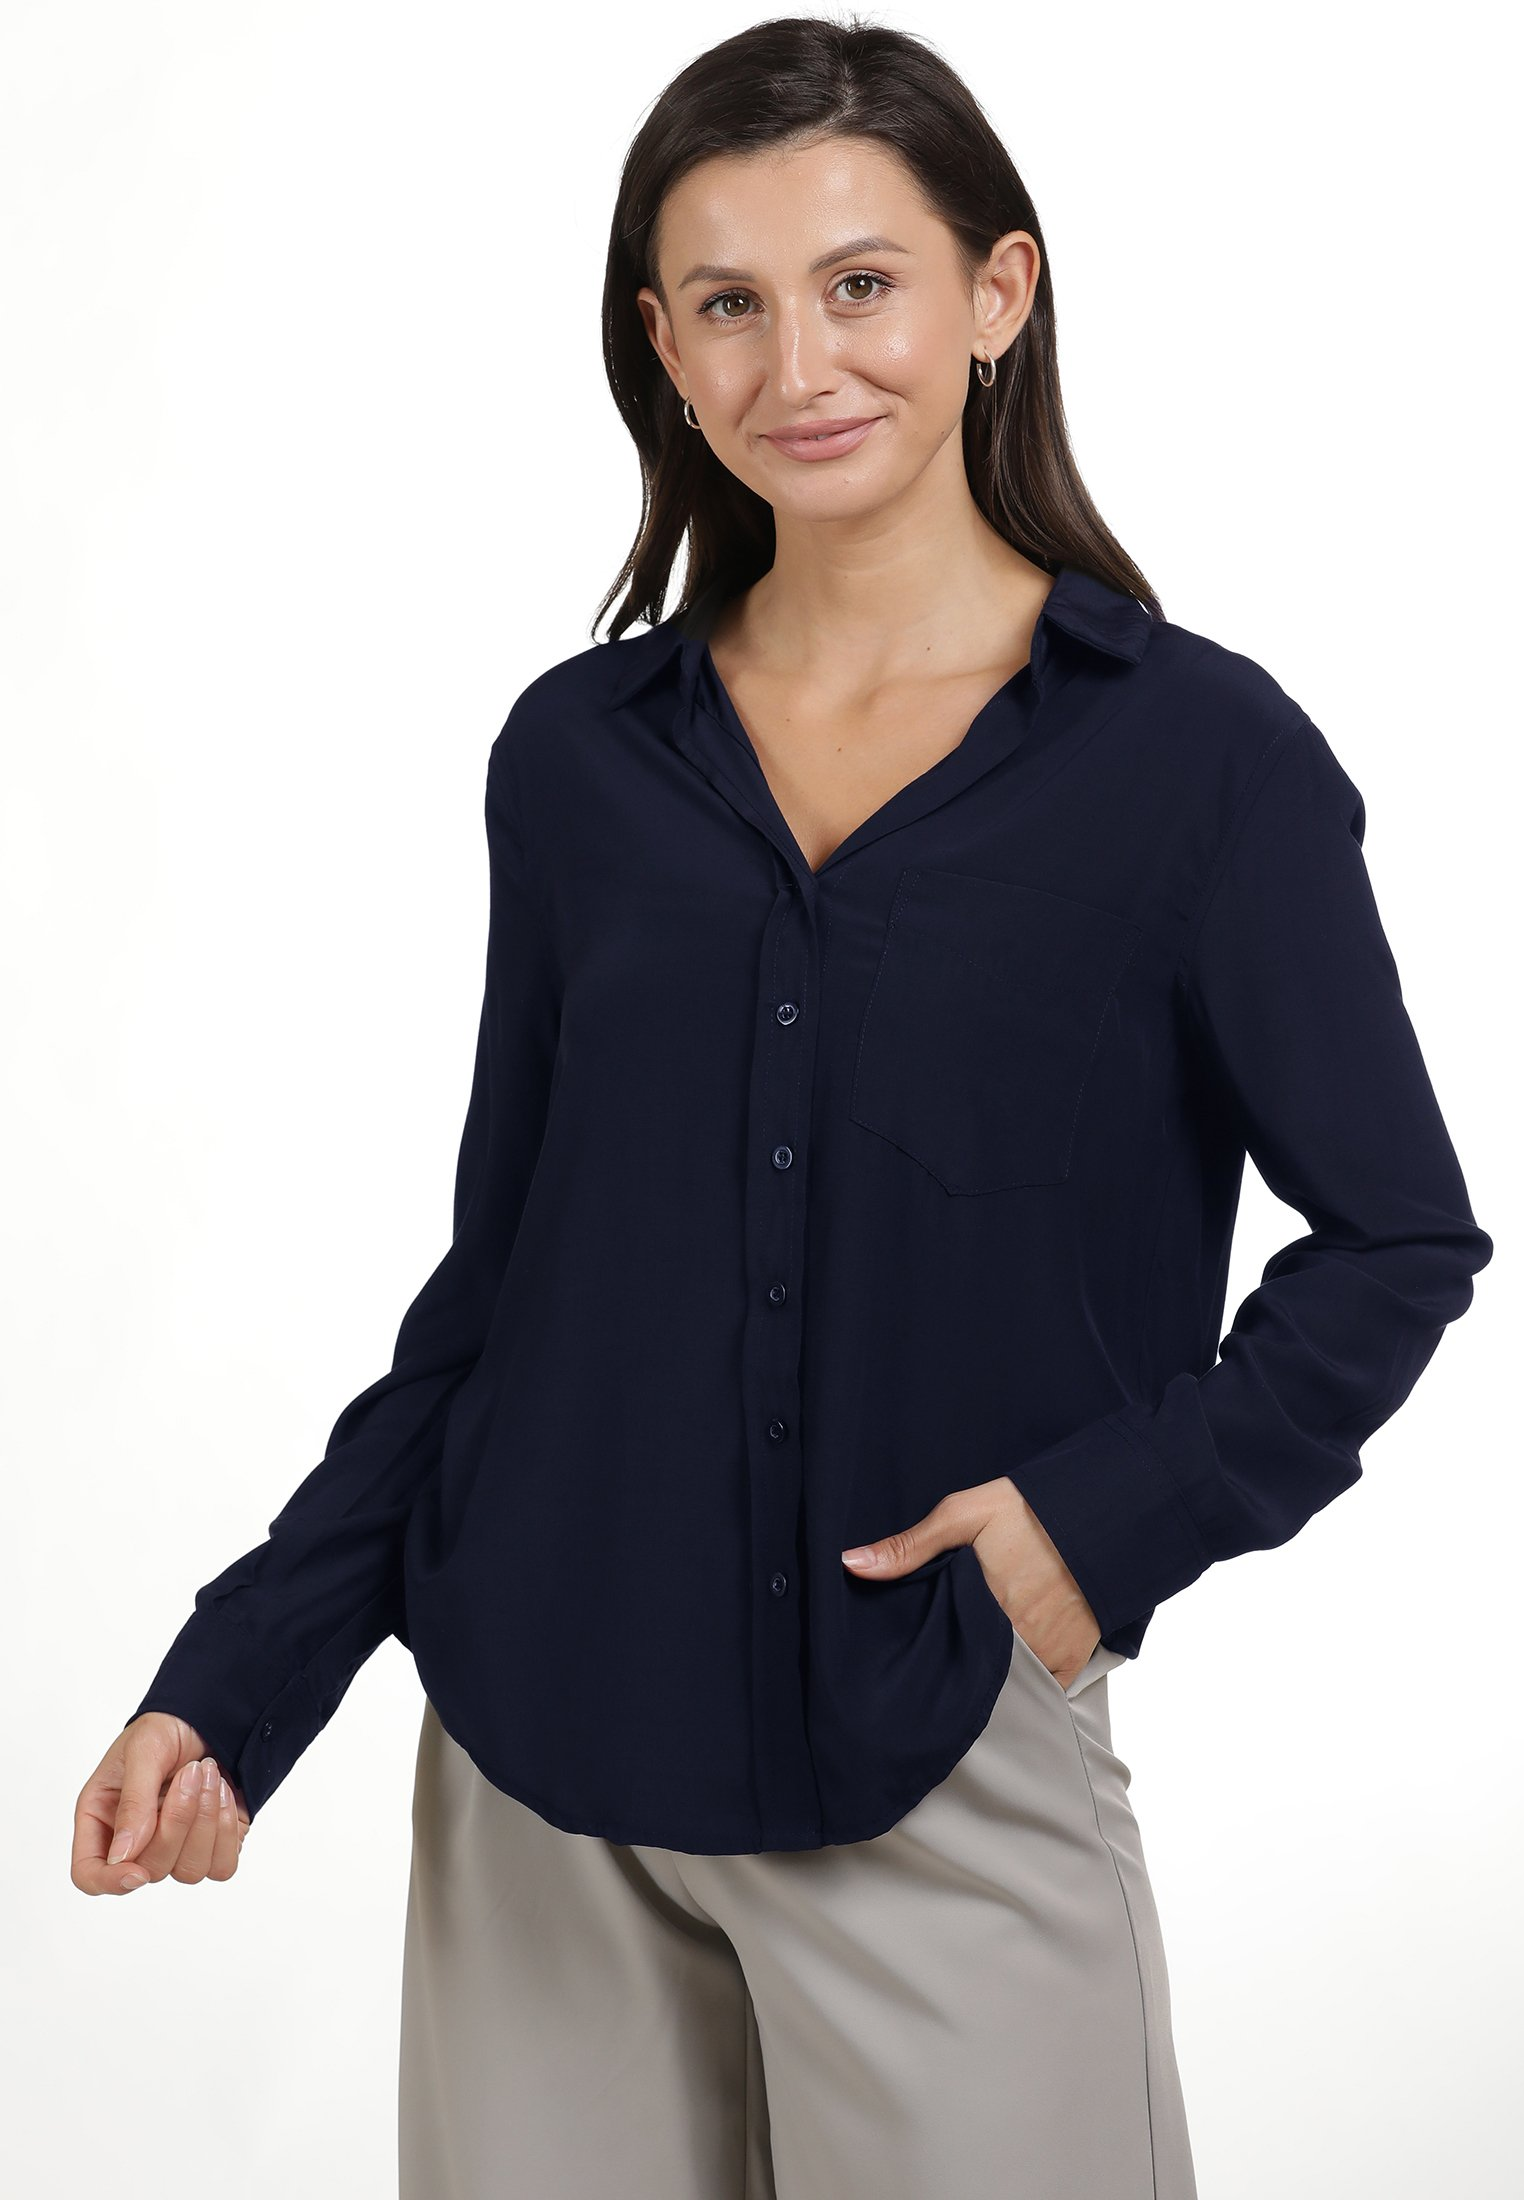 Classic Women's Clothing usha Button-down blouse marine QKbHx4DRF